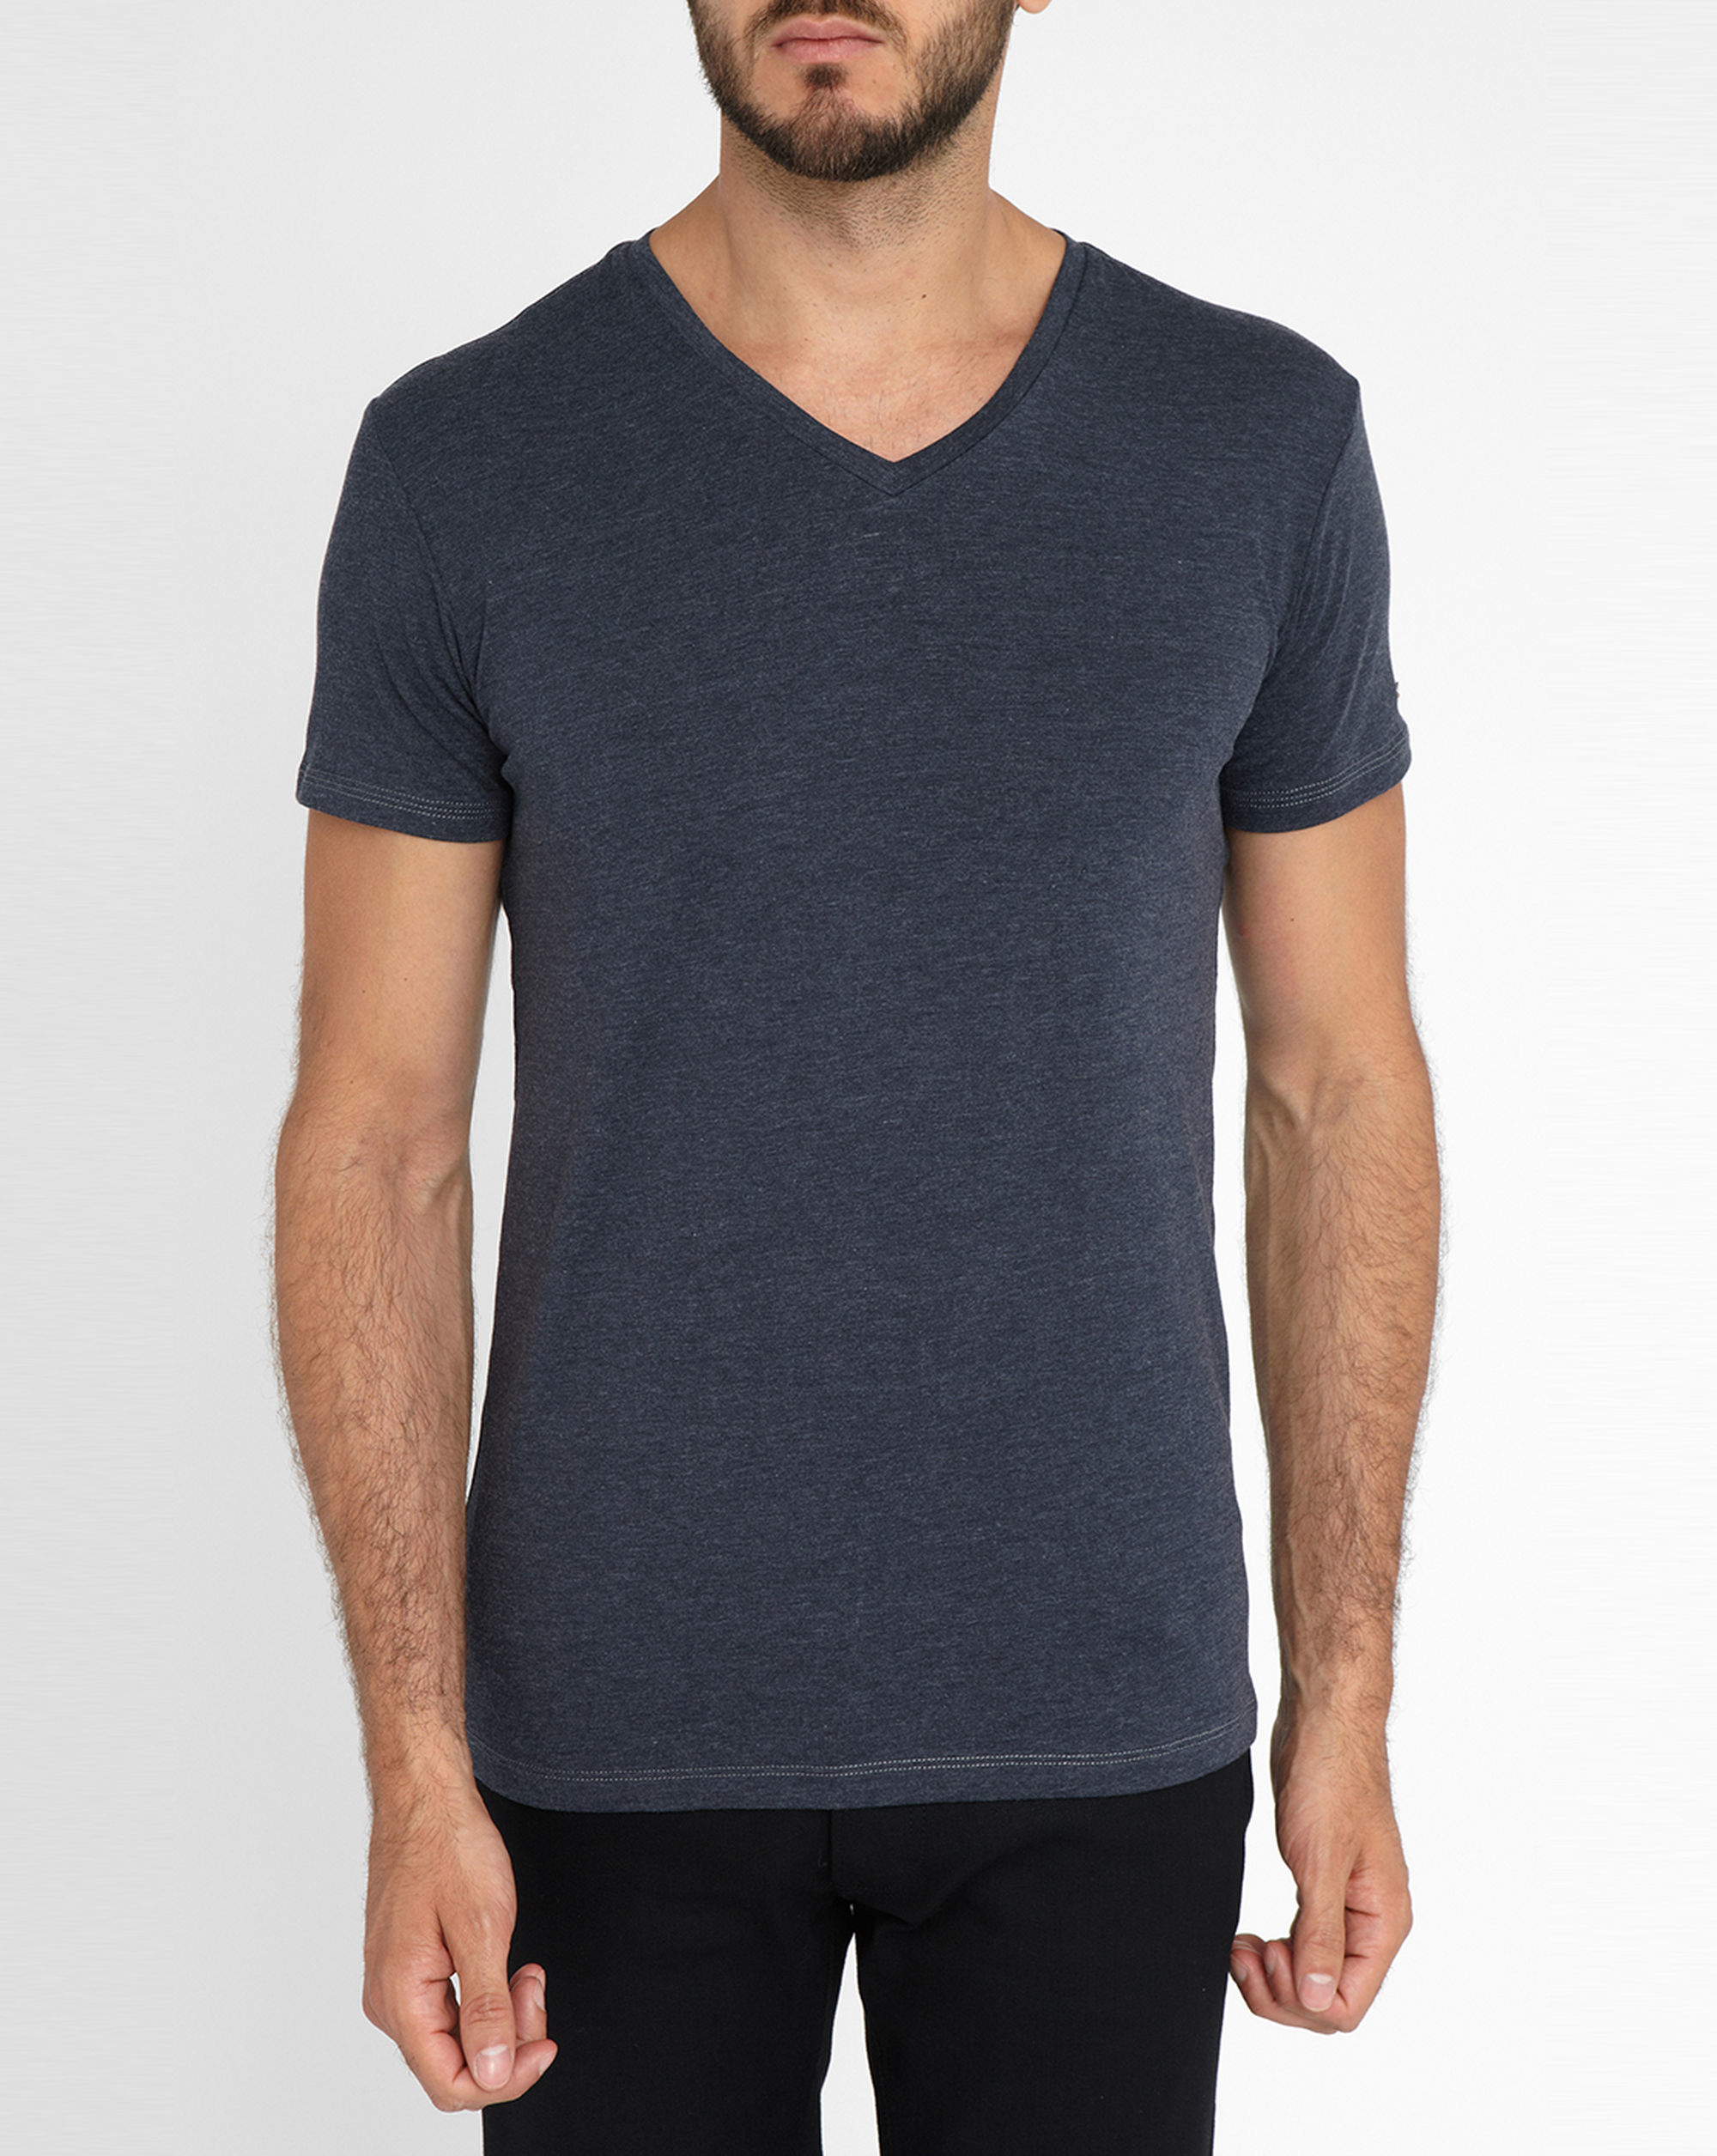 Diesel charcoal michael v neck t shirt in gray for men lyst for Mens diesel v neck t shirts